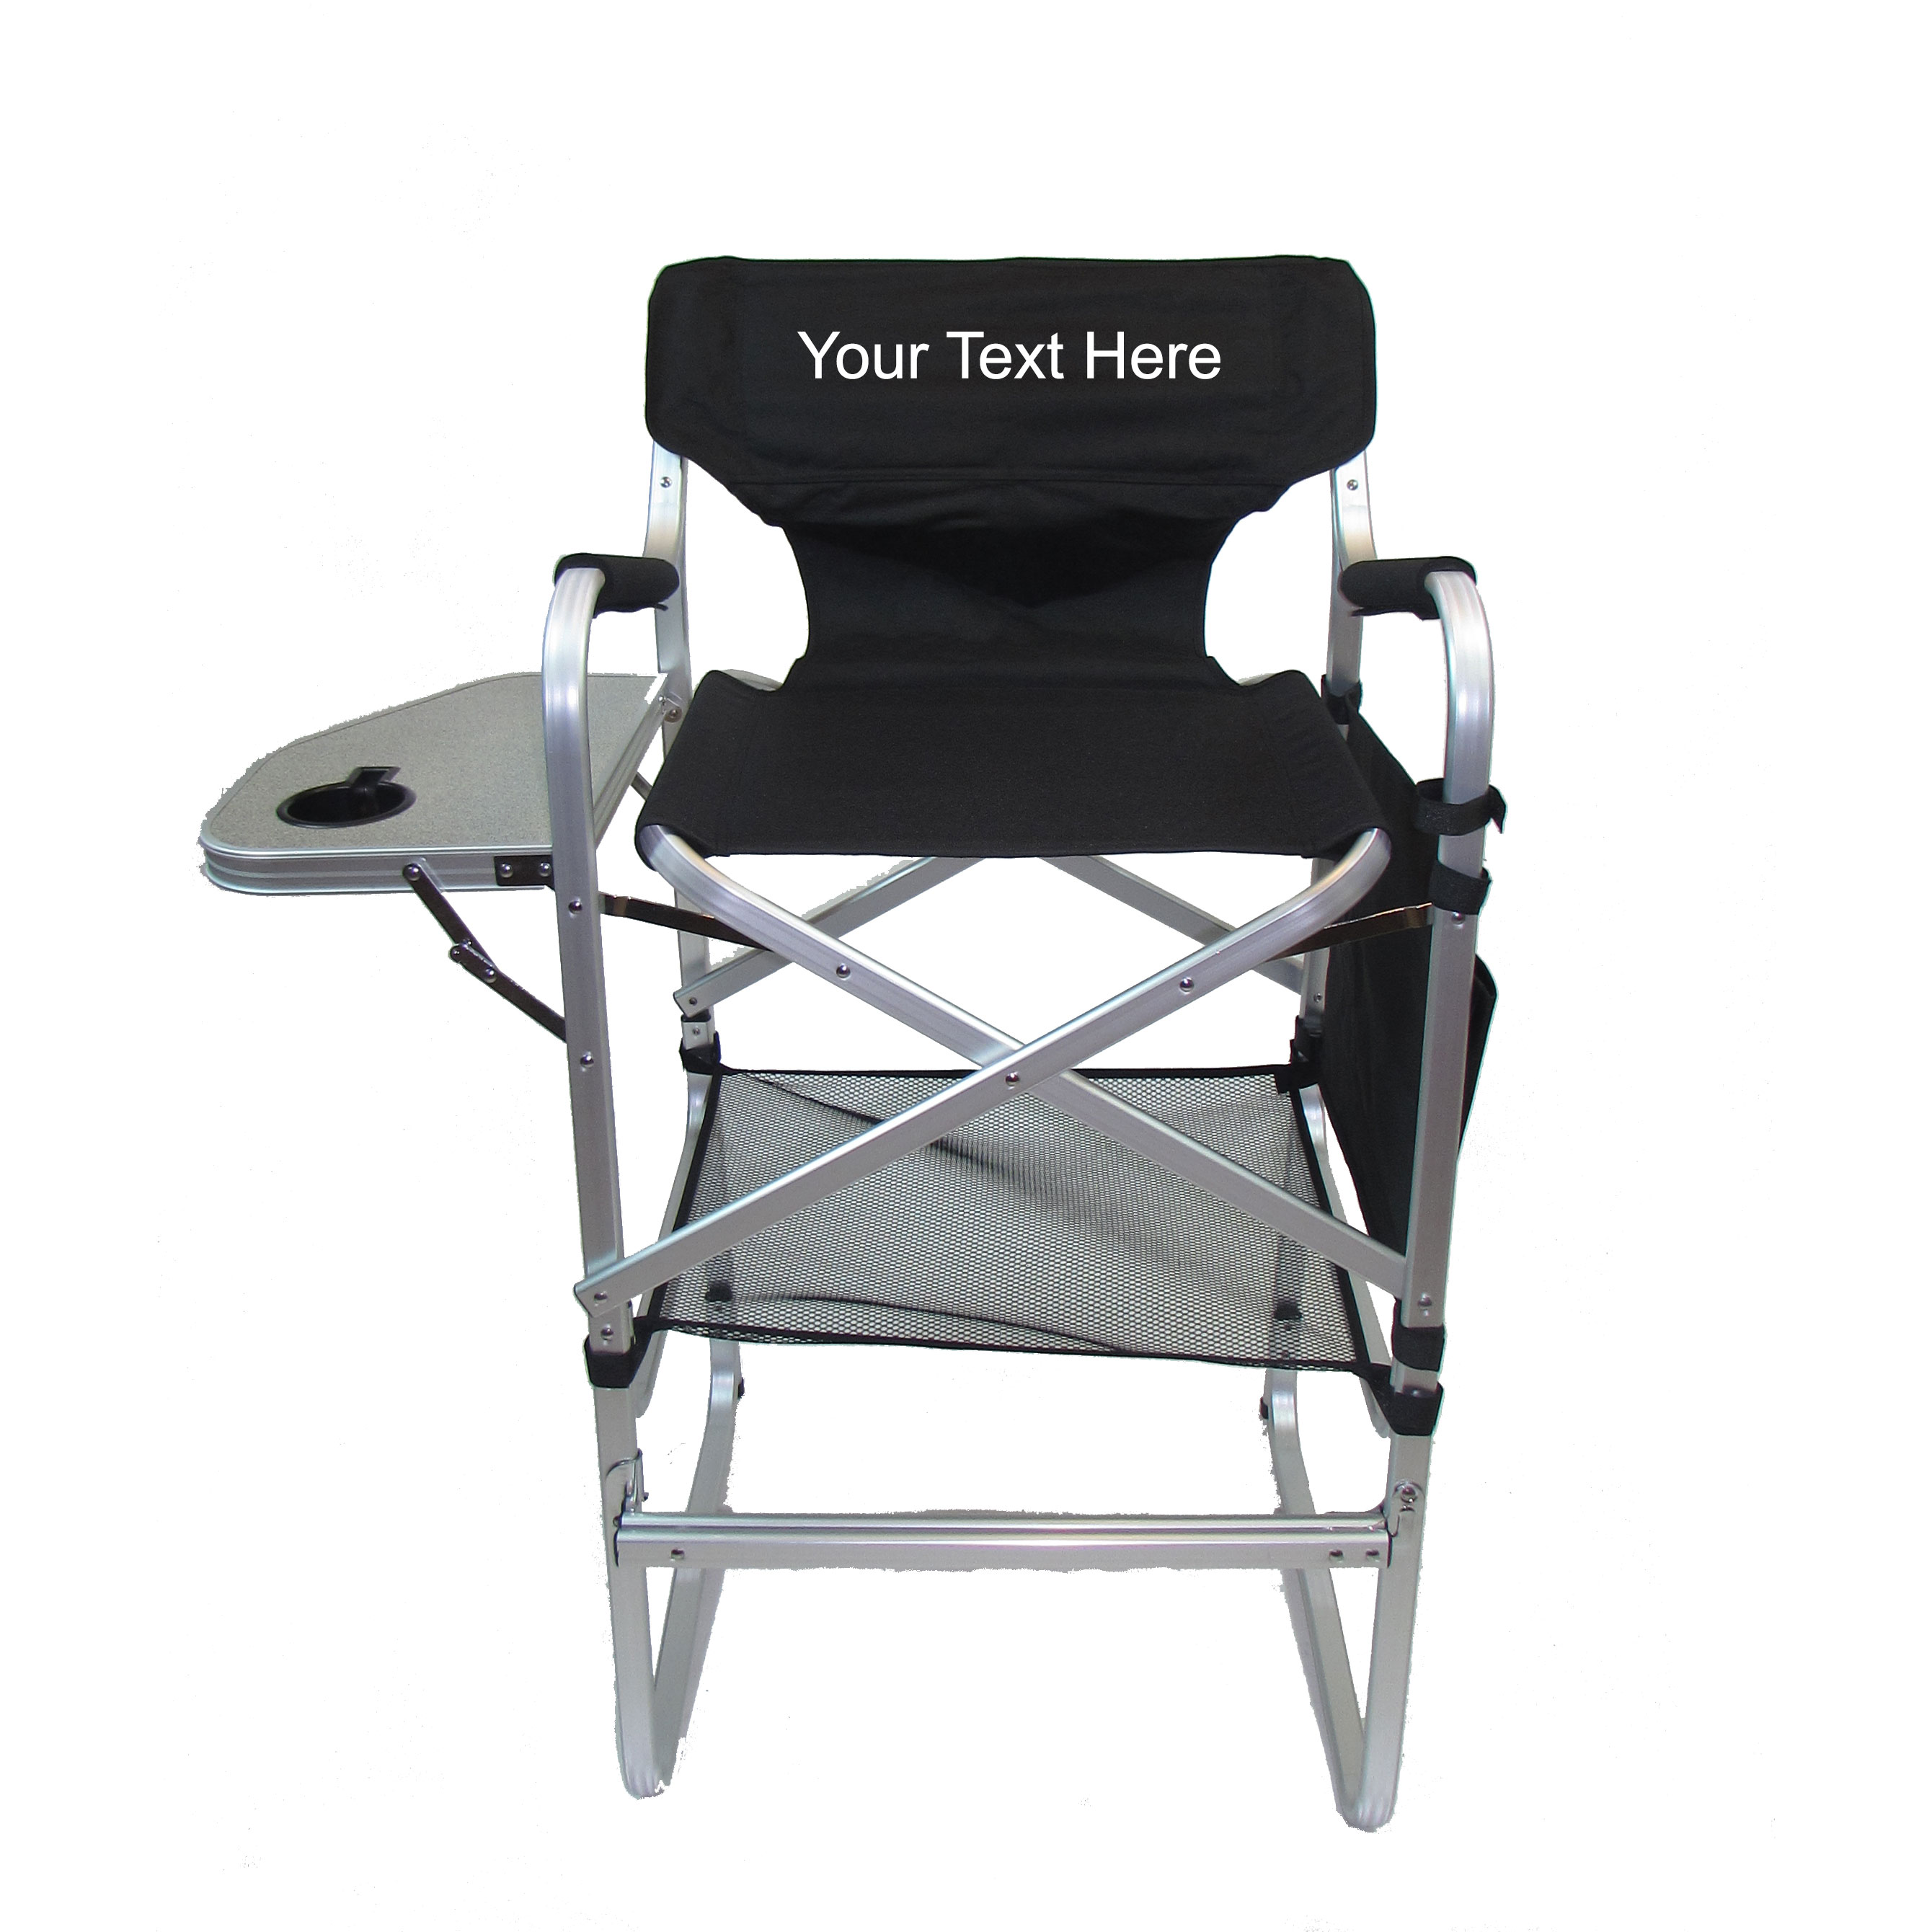 IMPRINTED Aluminum Bar Height Directors Chair with Table